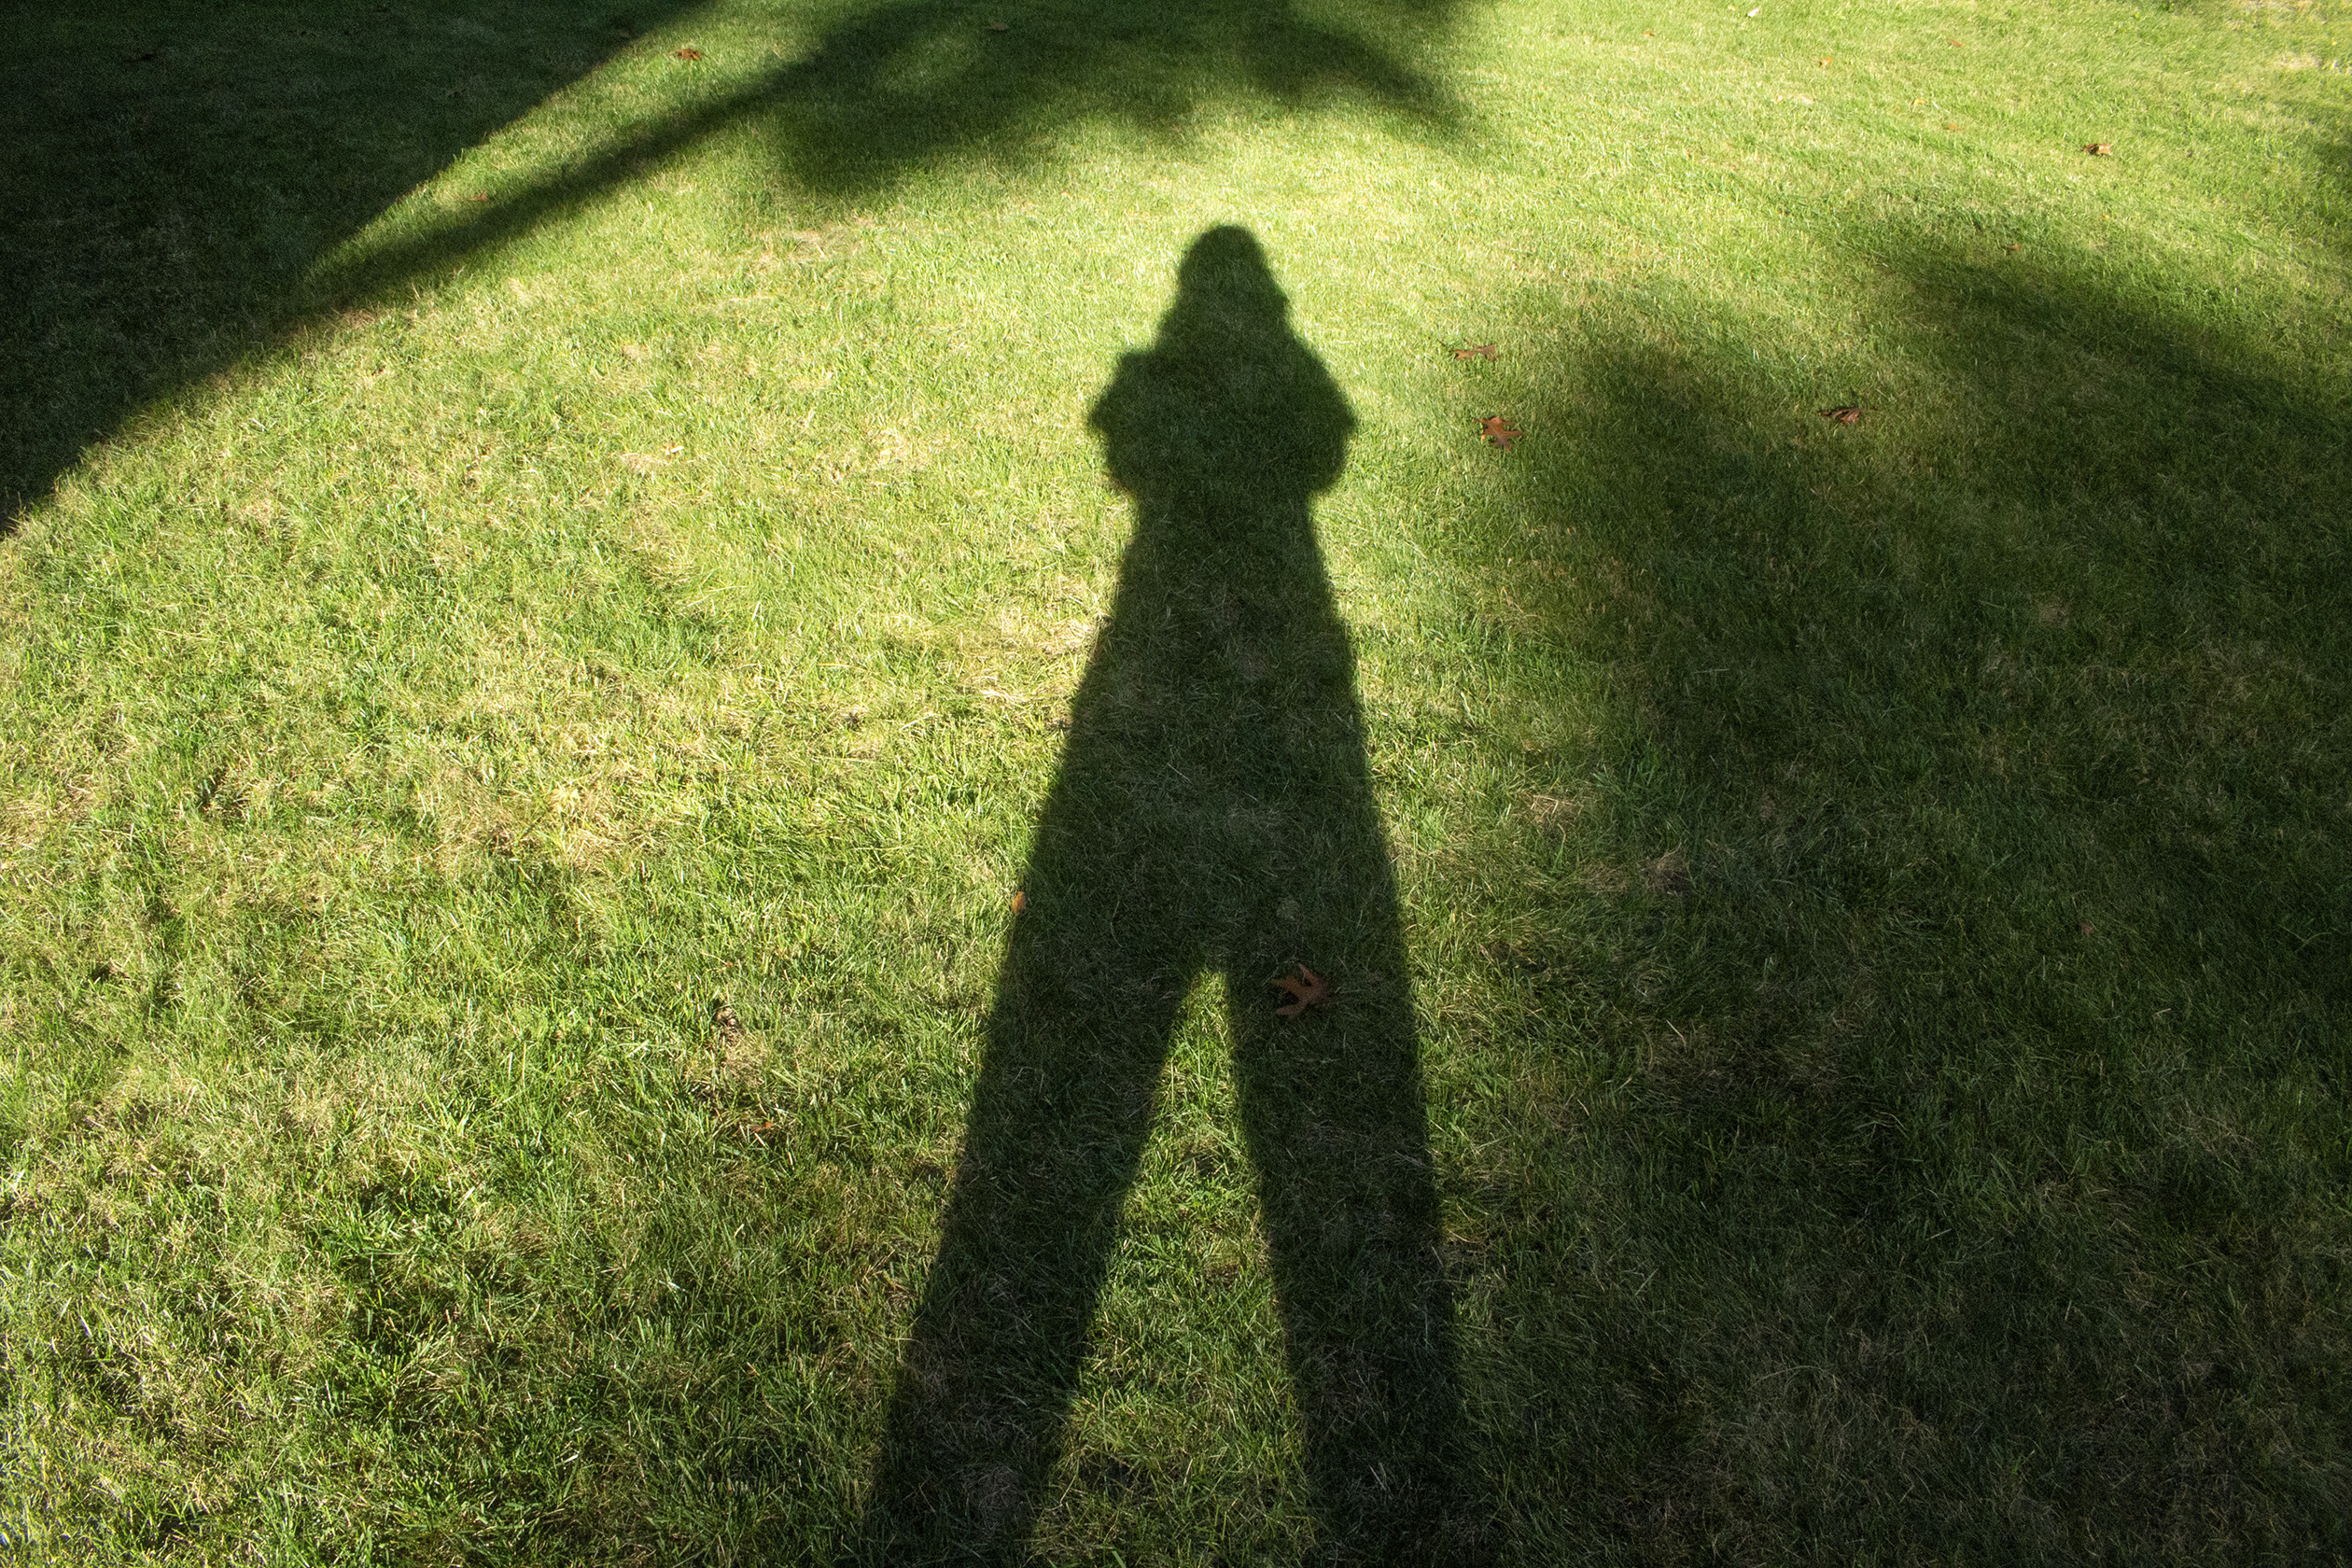 photograph of Katie May Howarth's shadow on a lawn of bright green grass